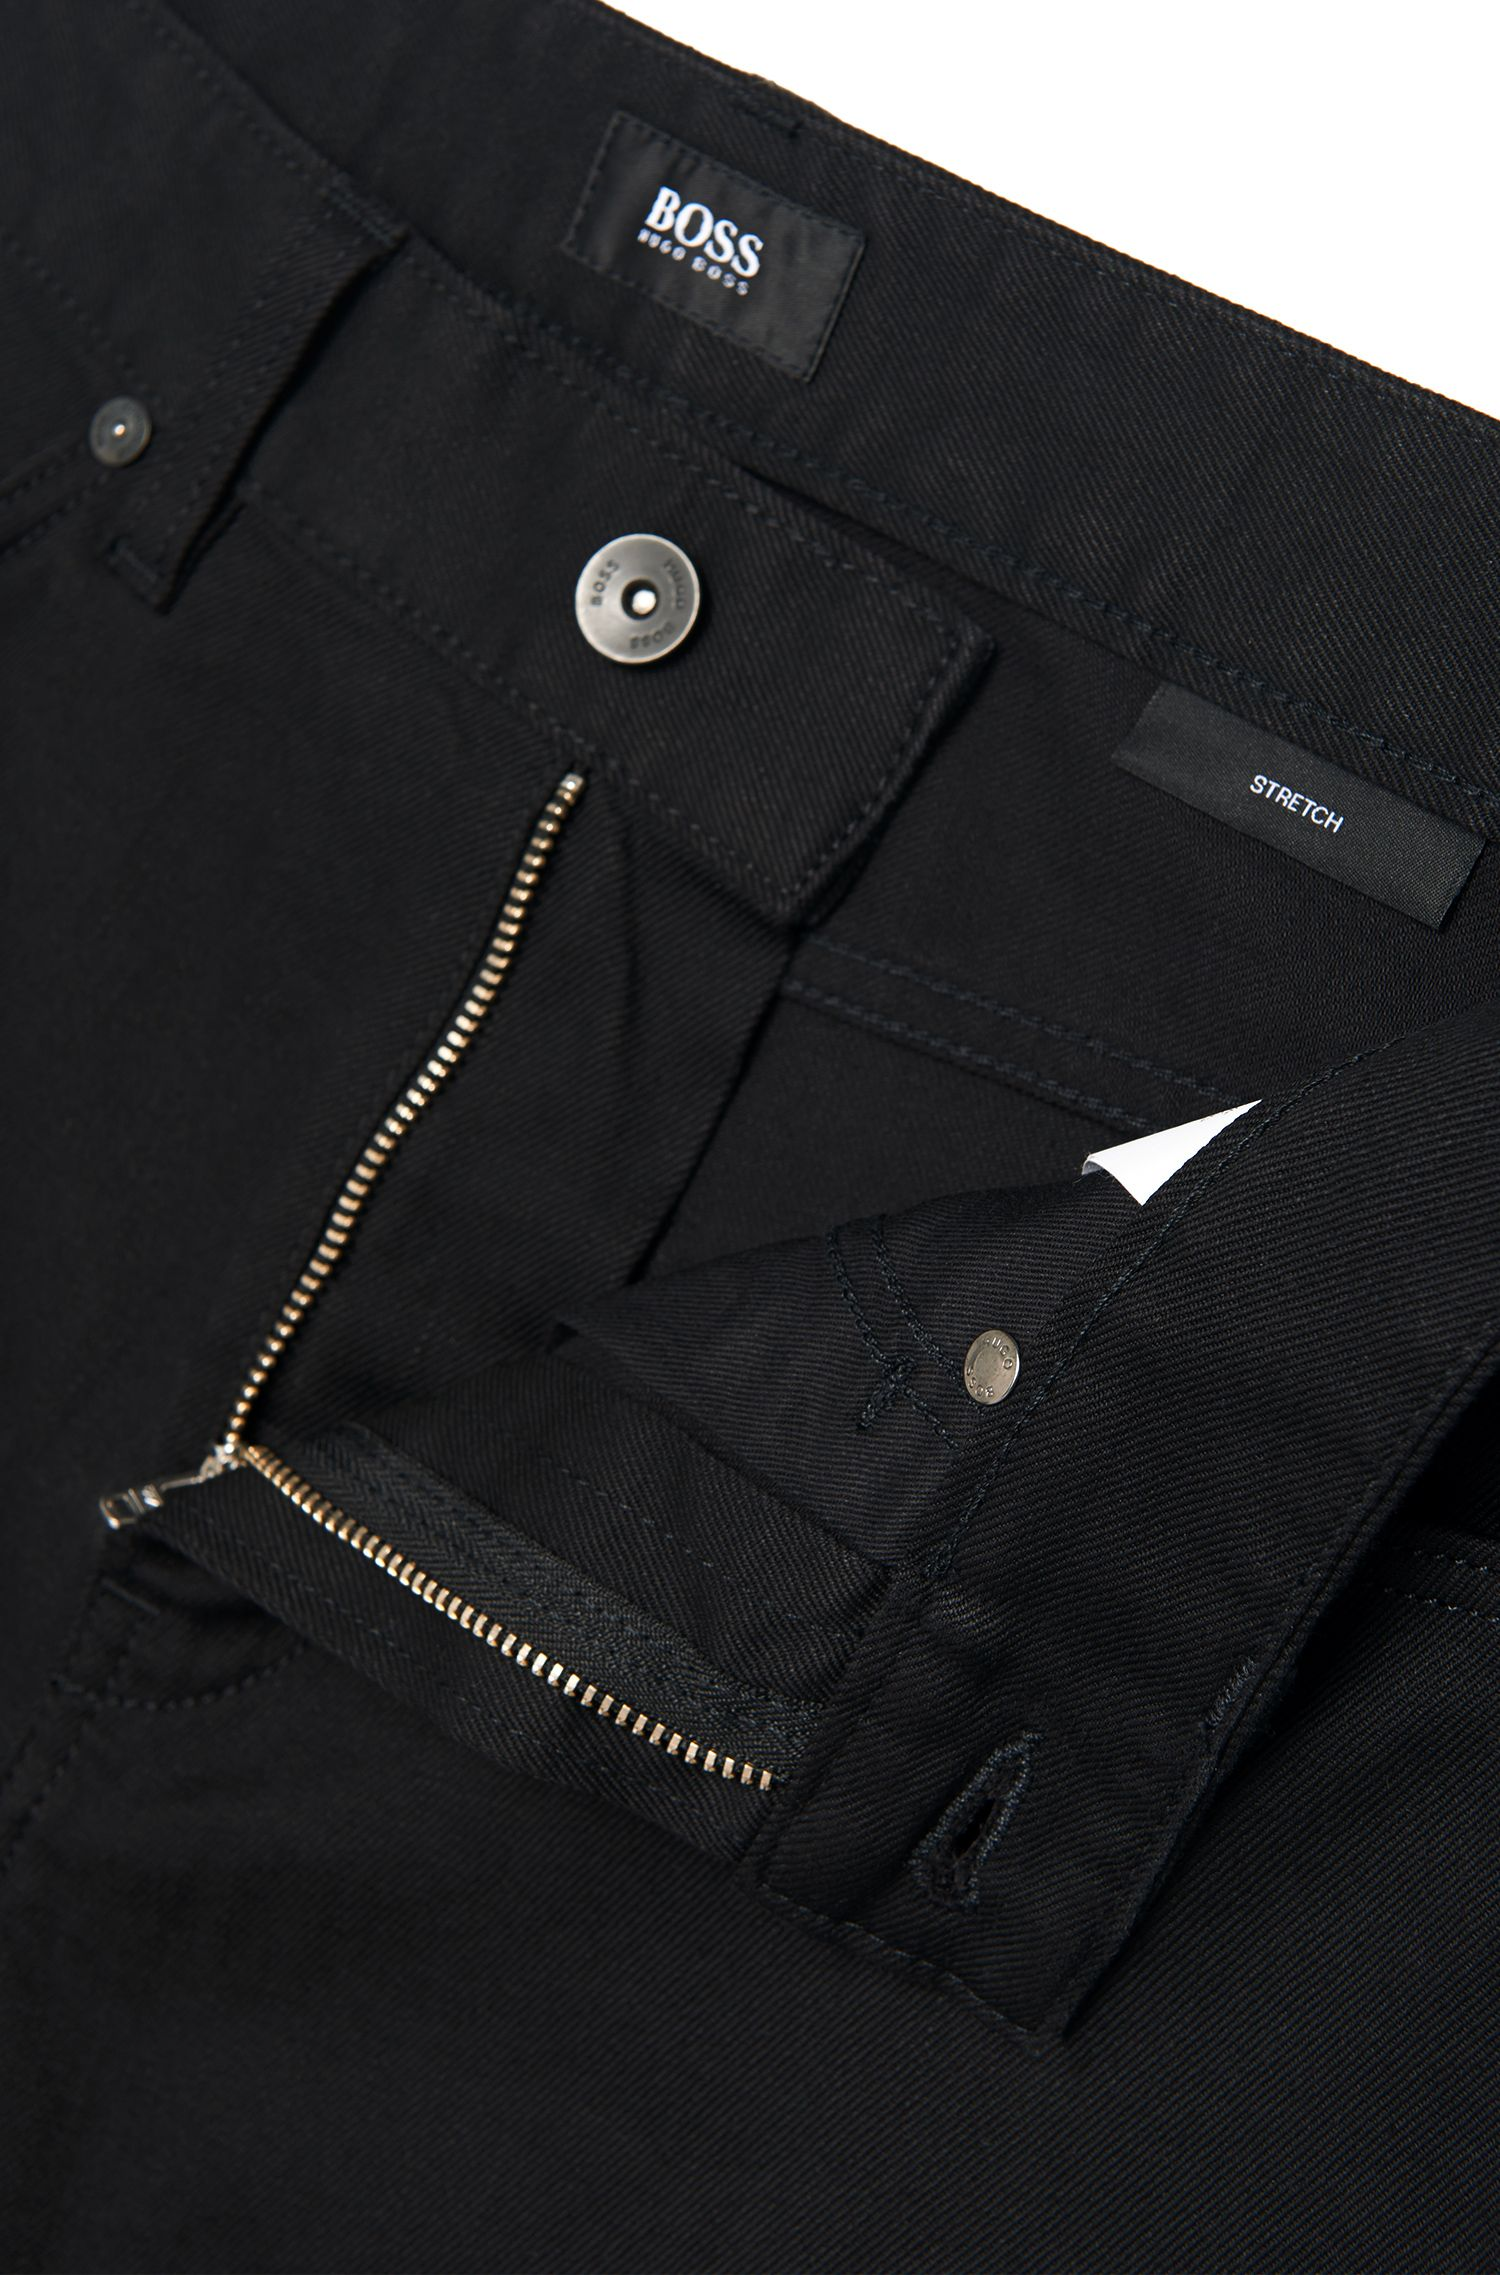 Jeans Slim Fit en coton stretch uni : « Delaware3 »